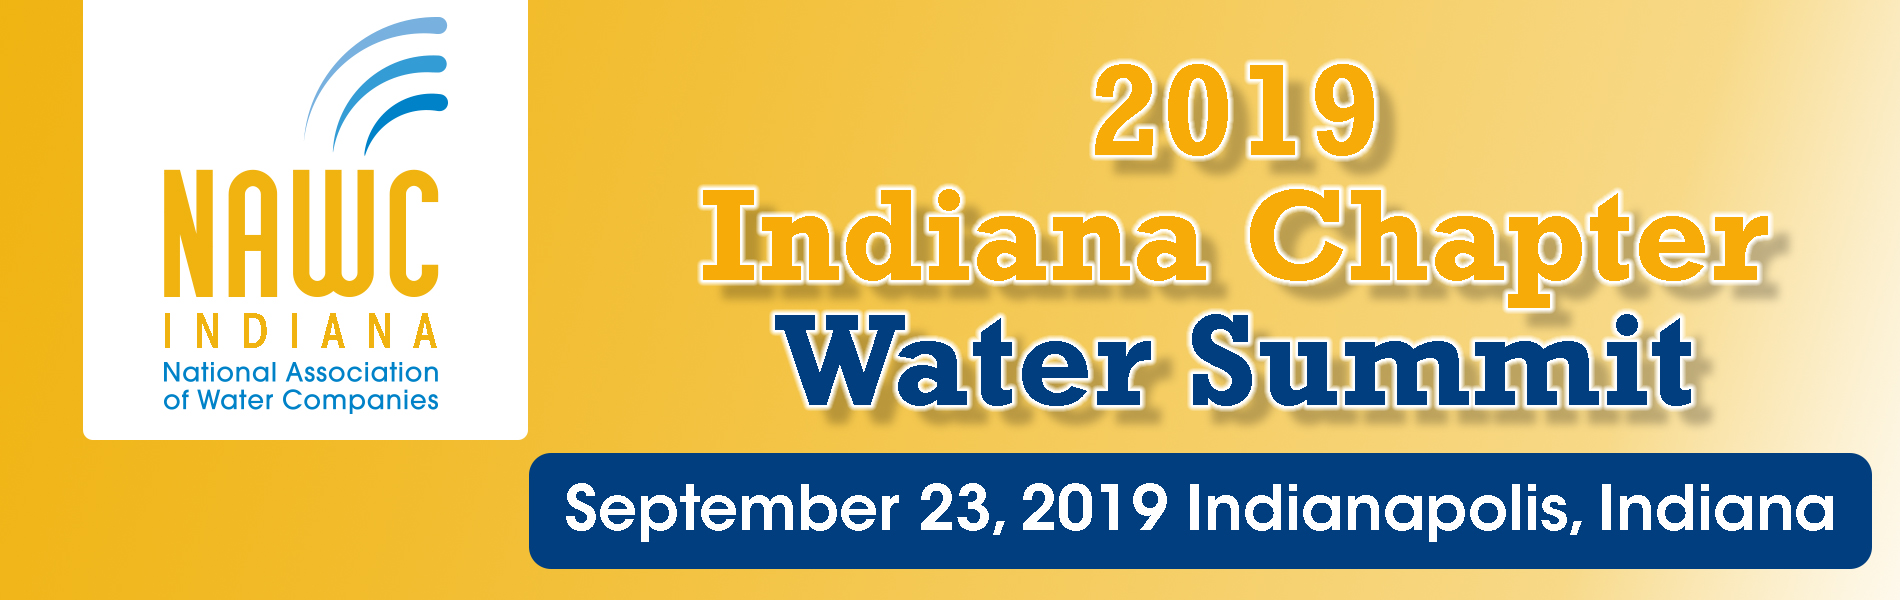 2019 Indiana Chapter Water Summit